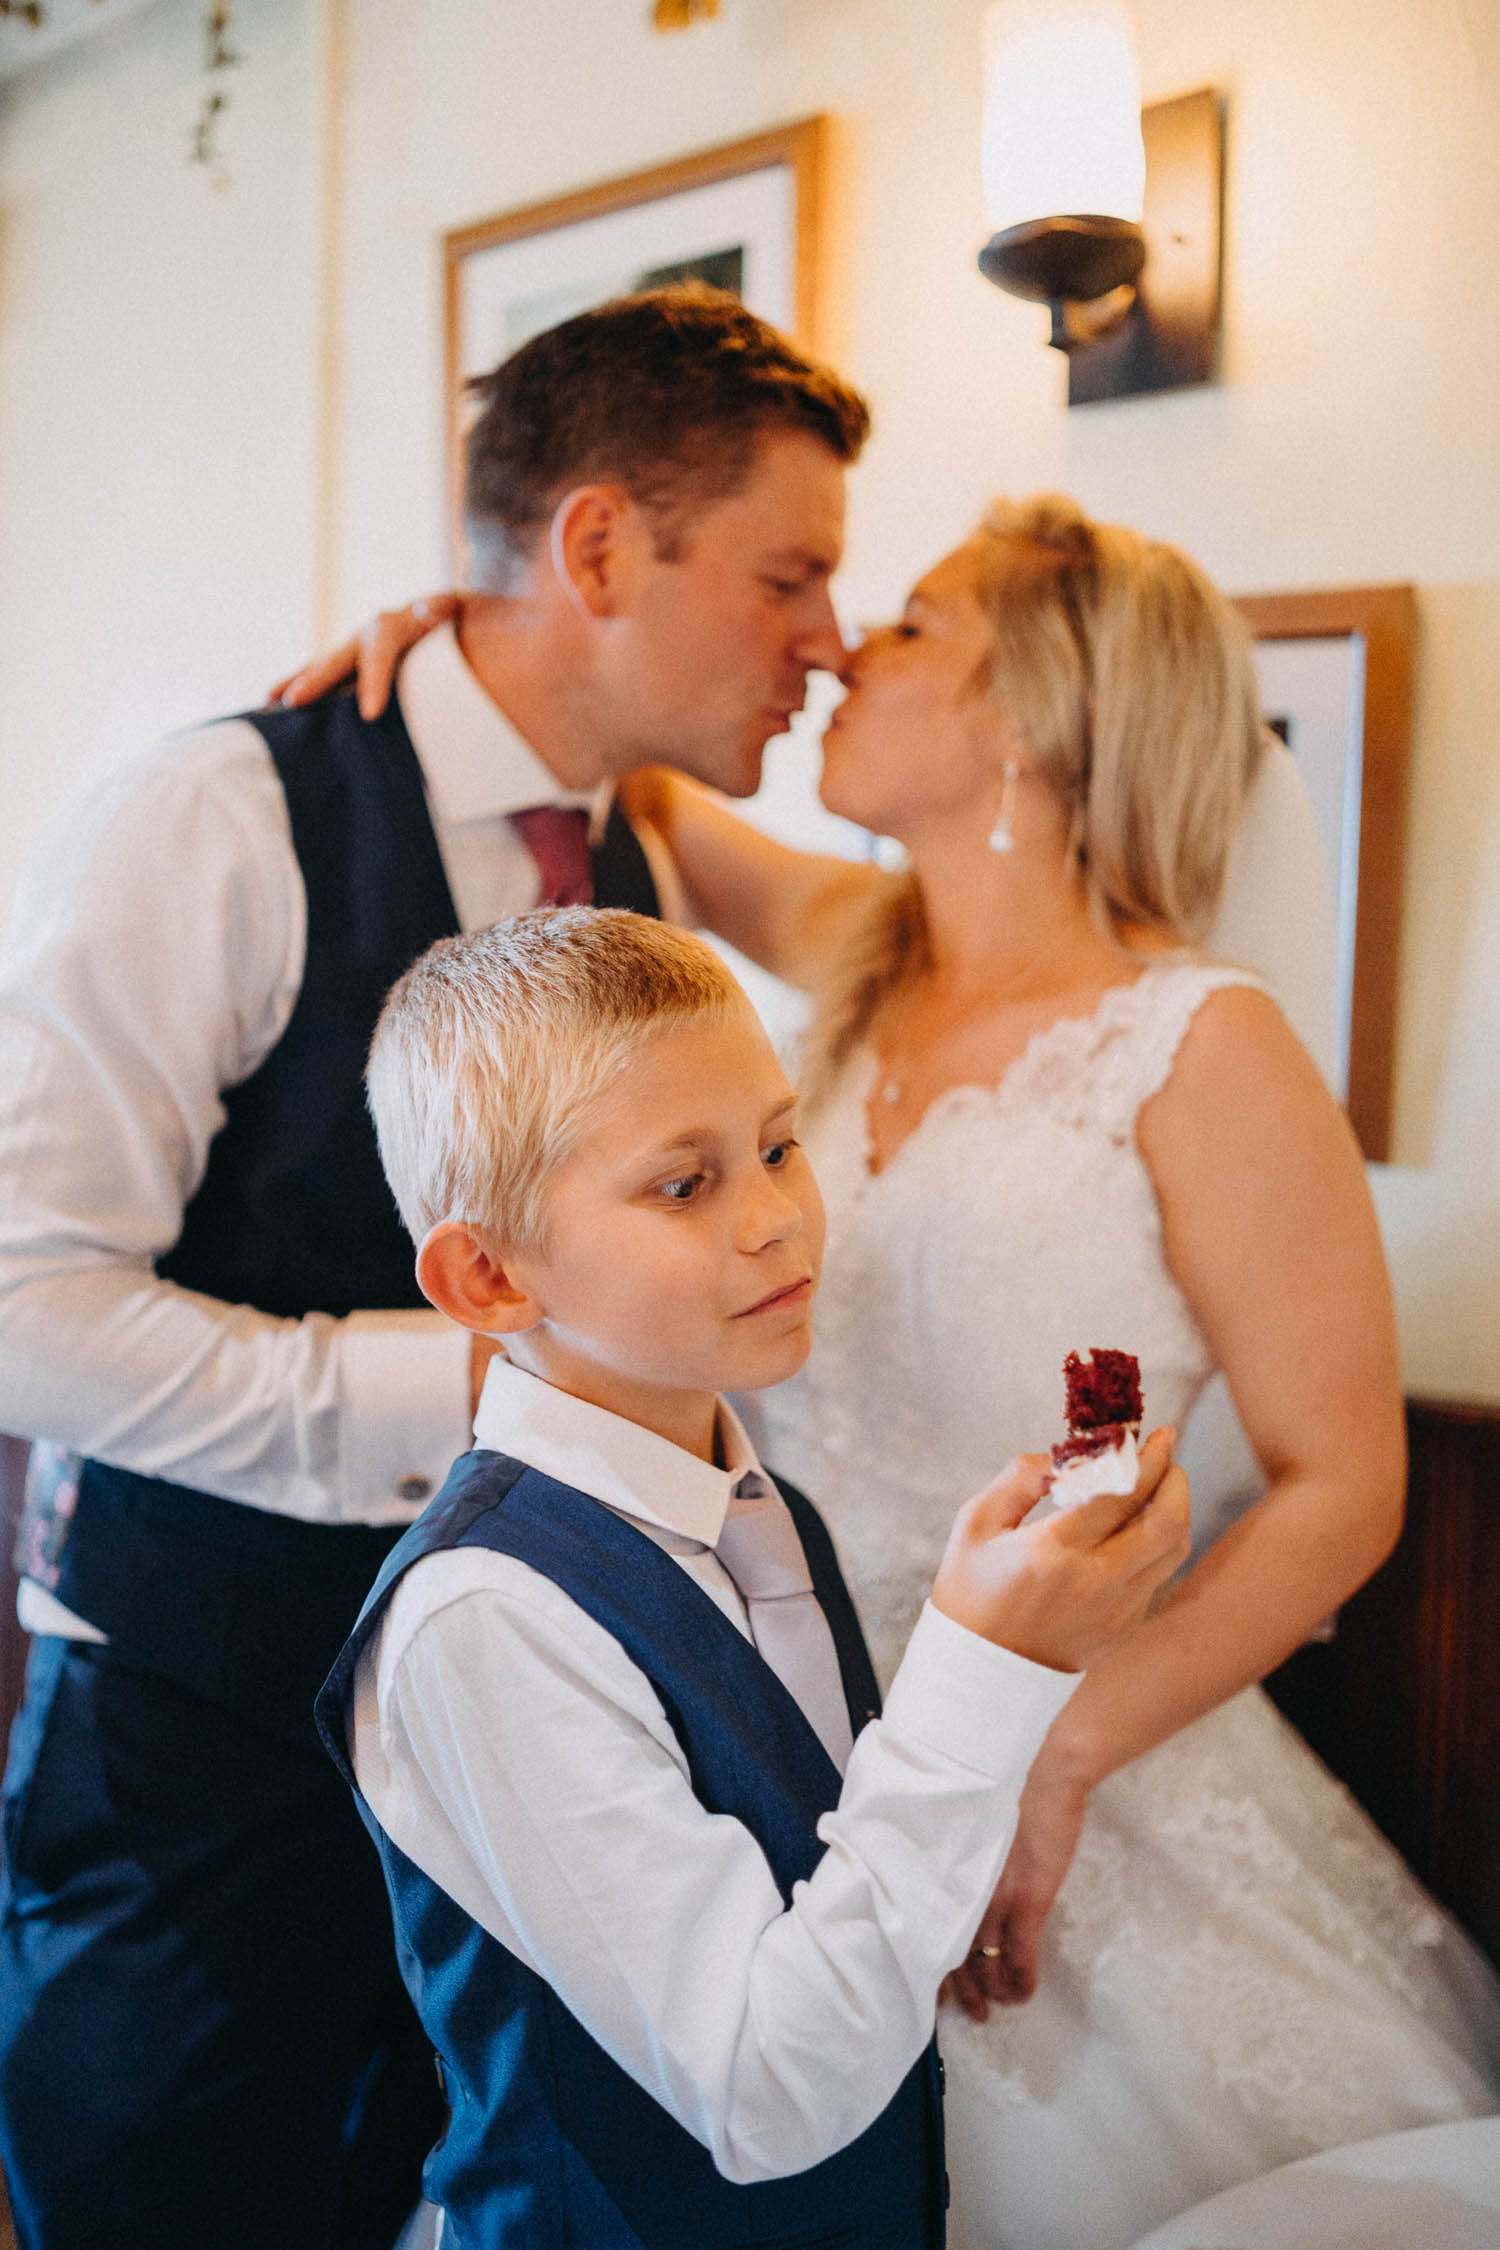 Quirky Wedding Photography in Kent, UK